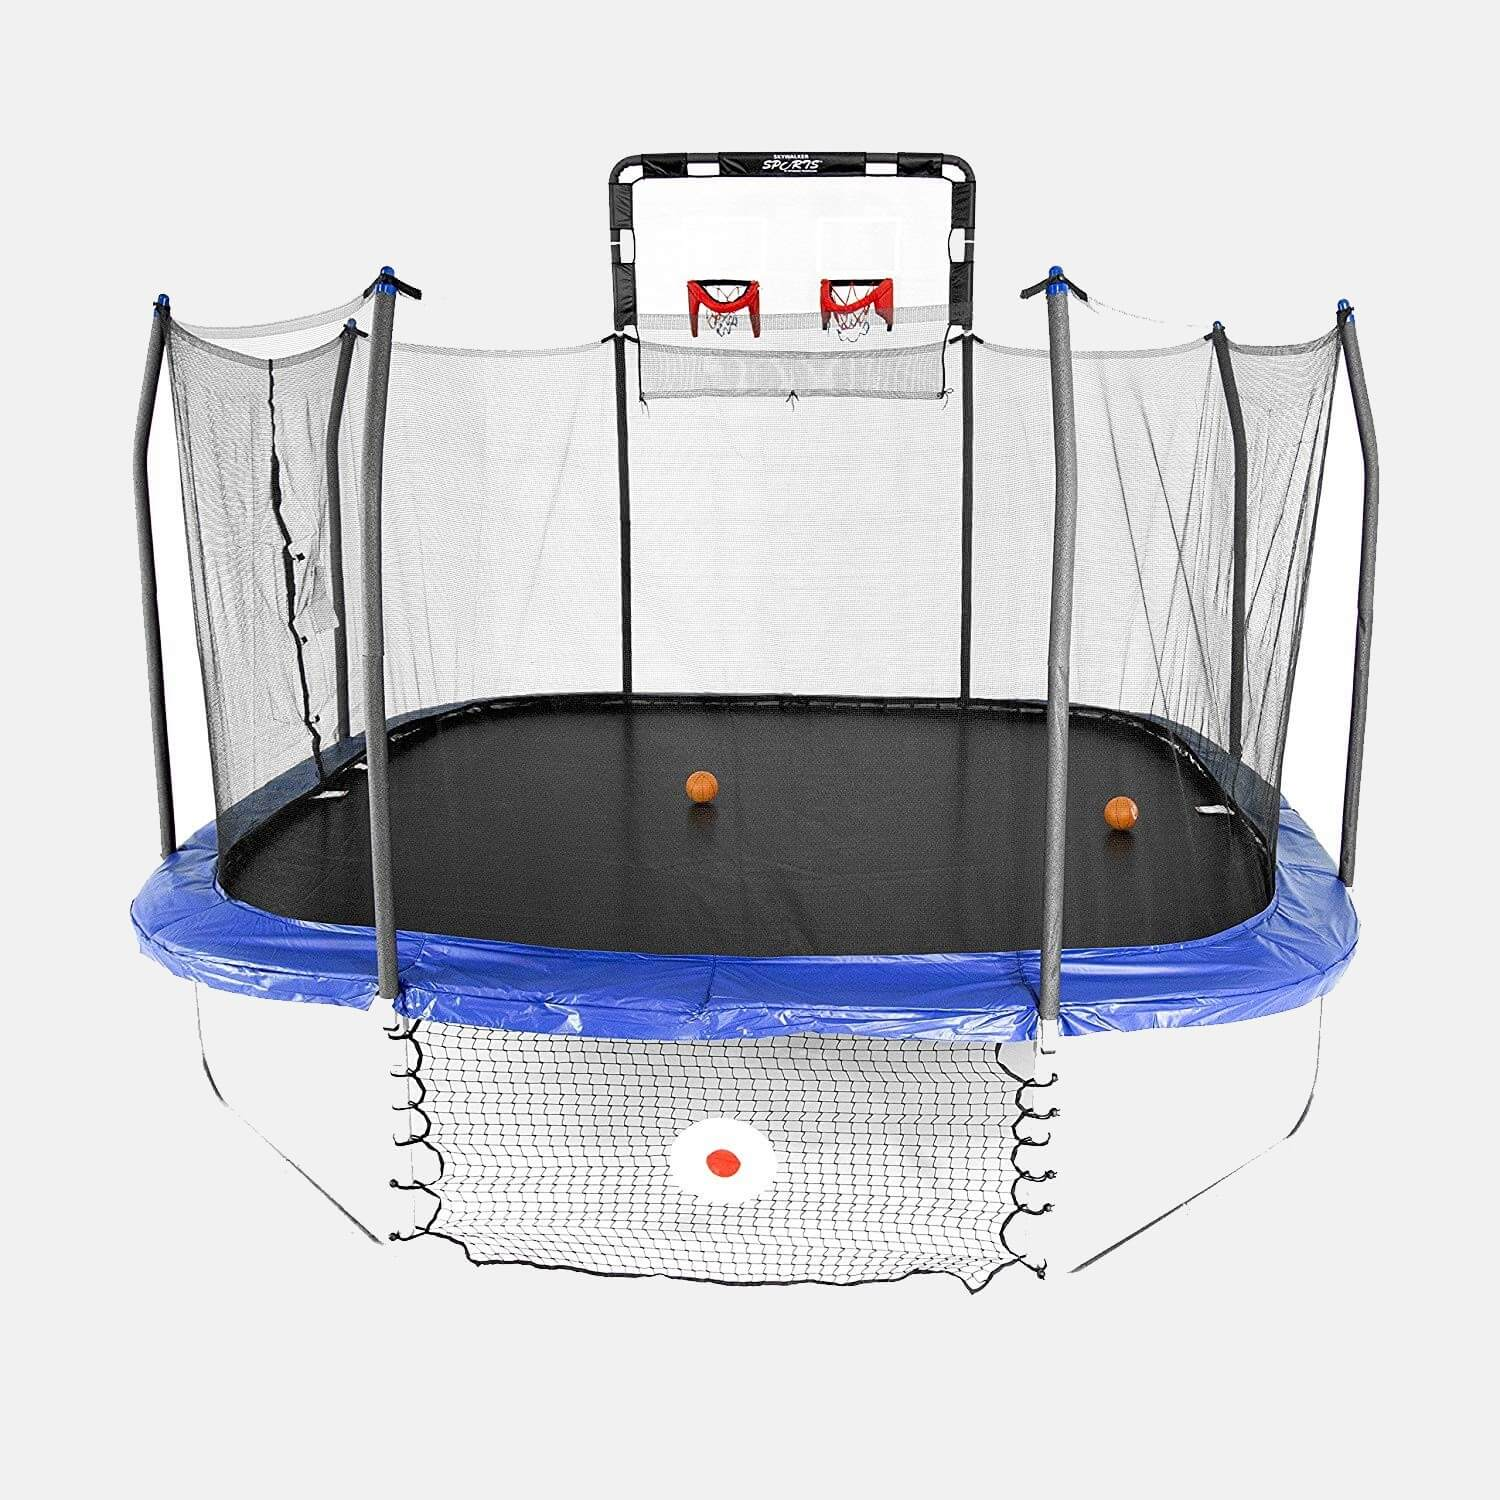 Skywalker 14 Ft. Square Jump, Dunk and Kick Sports Arena